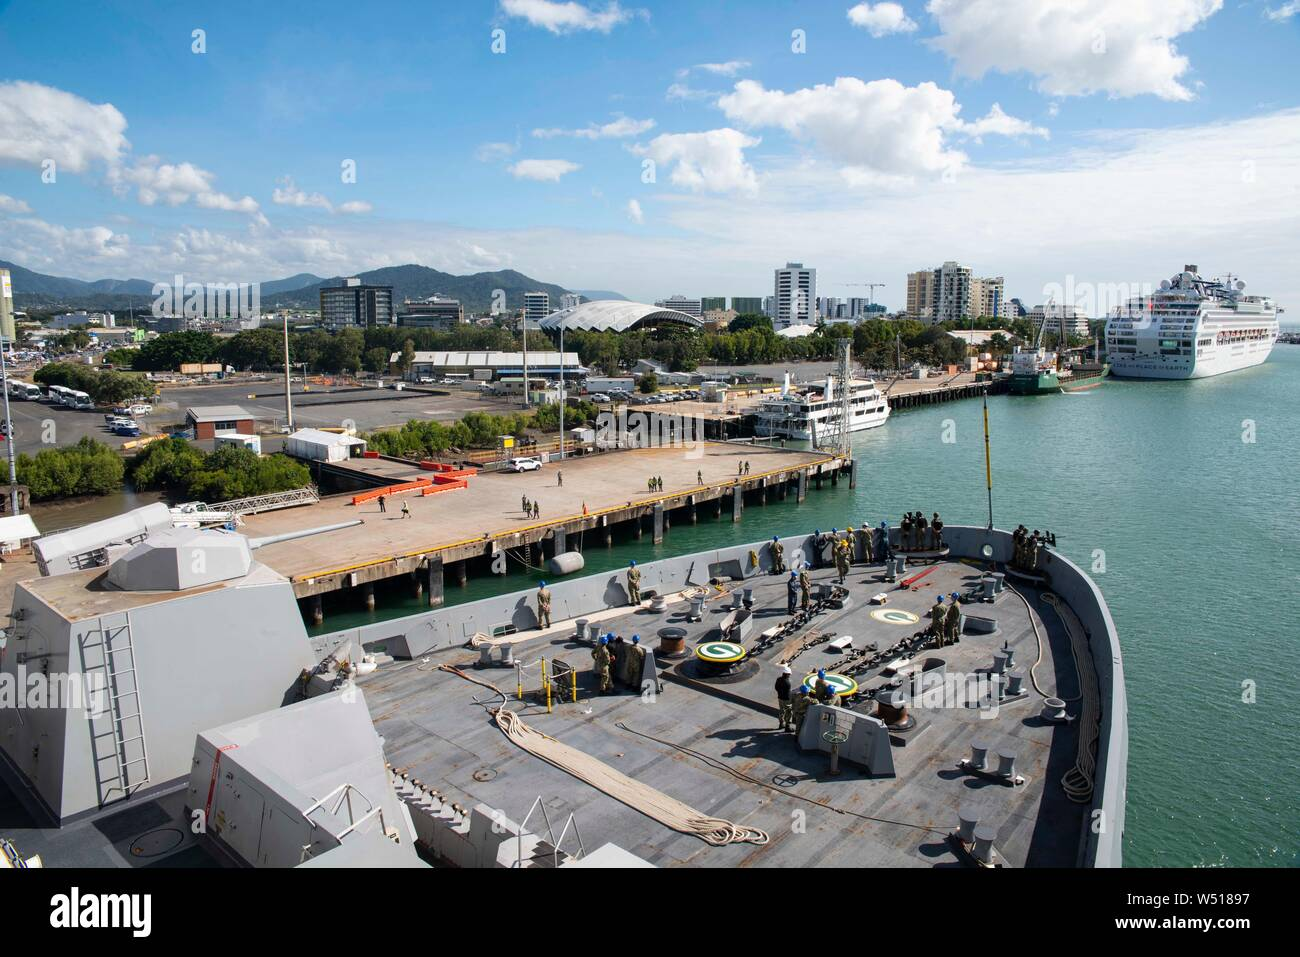 190726-N-DX072-1059 CAIRNS, Australia (July 26, 2019) The amphibious transport dock ship USS Green Bay (LPD 20) arrives in Cairns, Australia for a scheduled port visit. Green Bay, part of the Wasp Expeditionary Strike Group, with embarked 31st Marine Expeditionary Unit, participated in Talisman Sabre 2019 off the coast of Northern Australia. A bilateral, biennial event, Talisman Sabre is designed to improve U.S. and Australian combat training, readiness and interoperability through realistic, relevant training necessary to maintain regional security, peace and stability. (U.S. Navy photo by Ma Stock Photo